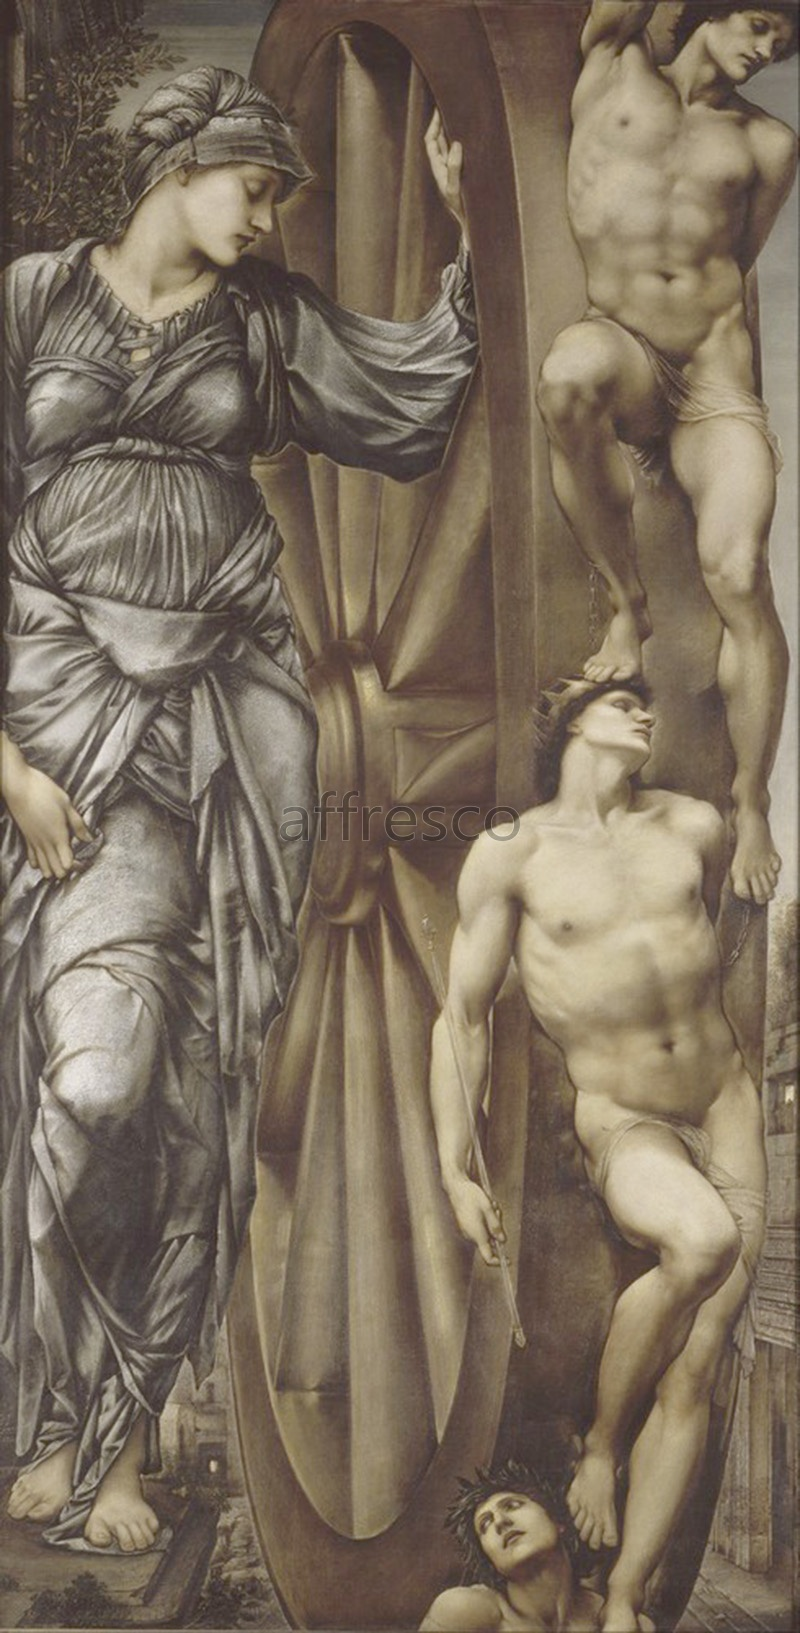 Classical antiquity themes | Edward Burne Jones The Wheel of Fortune | Affresco Factory